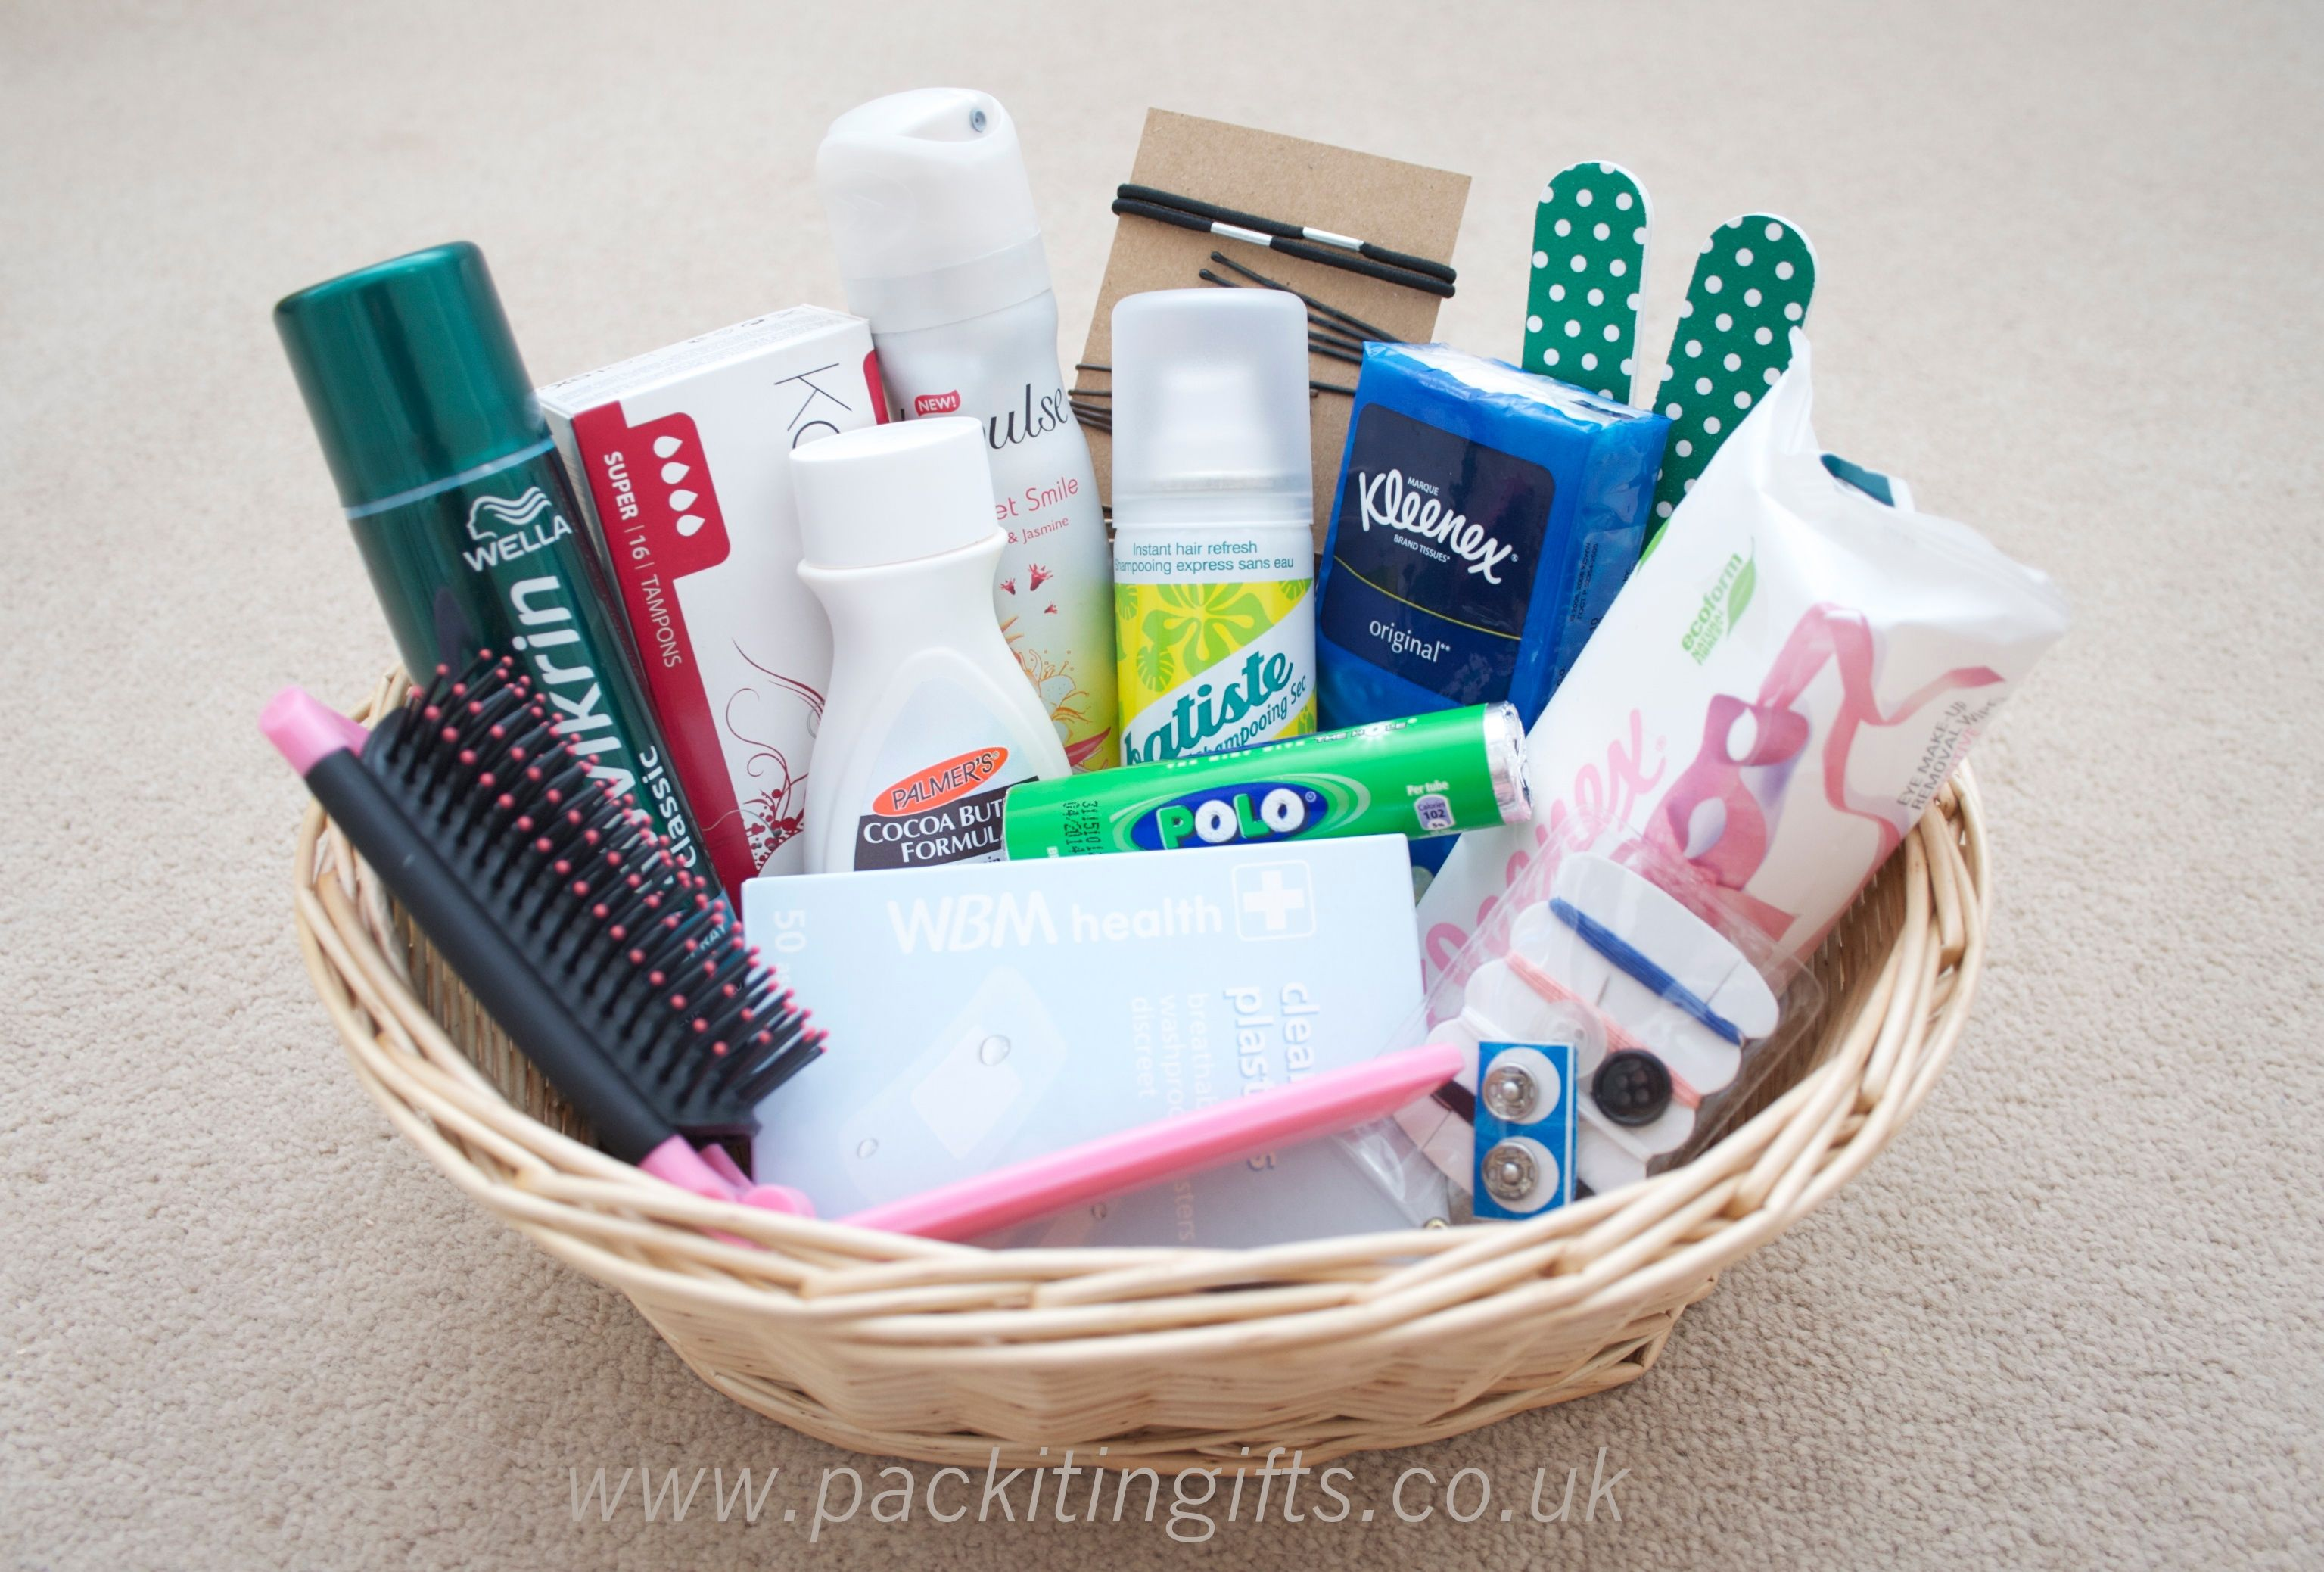 Wedding Bathroom Basket For Your Female Guests To Make The Most Of Your Lovely Wedding Day While You Get Bathroom Baskets Wedding Kit Bathroom Basket Wedding